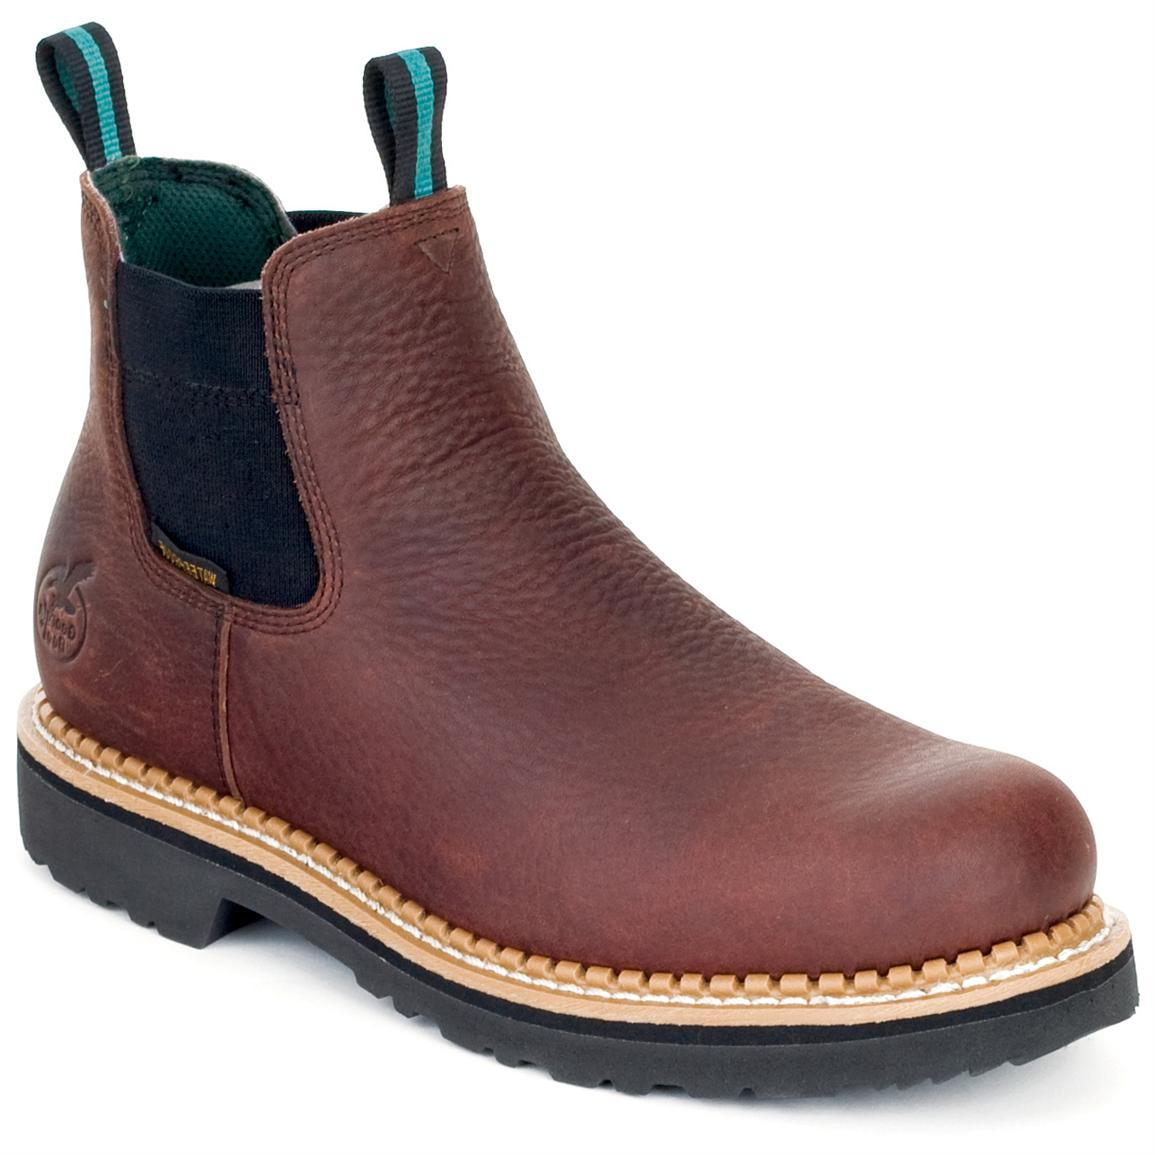 Slide On Work Boots - Boot Yc